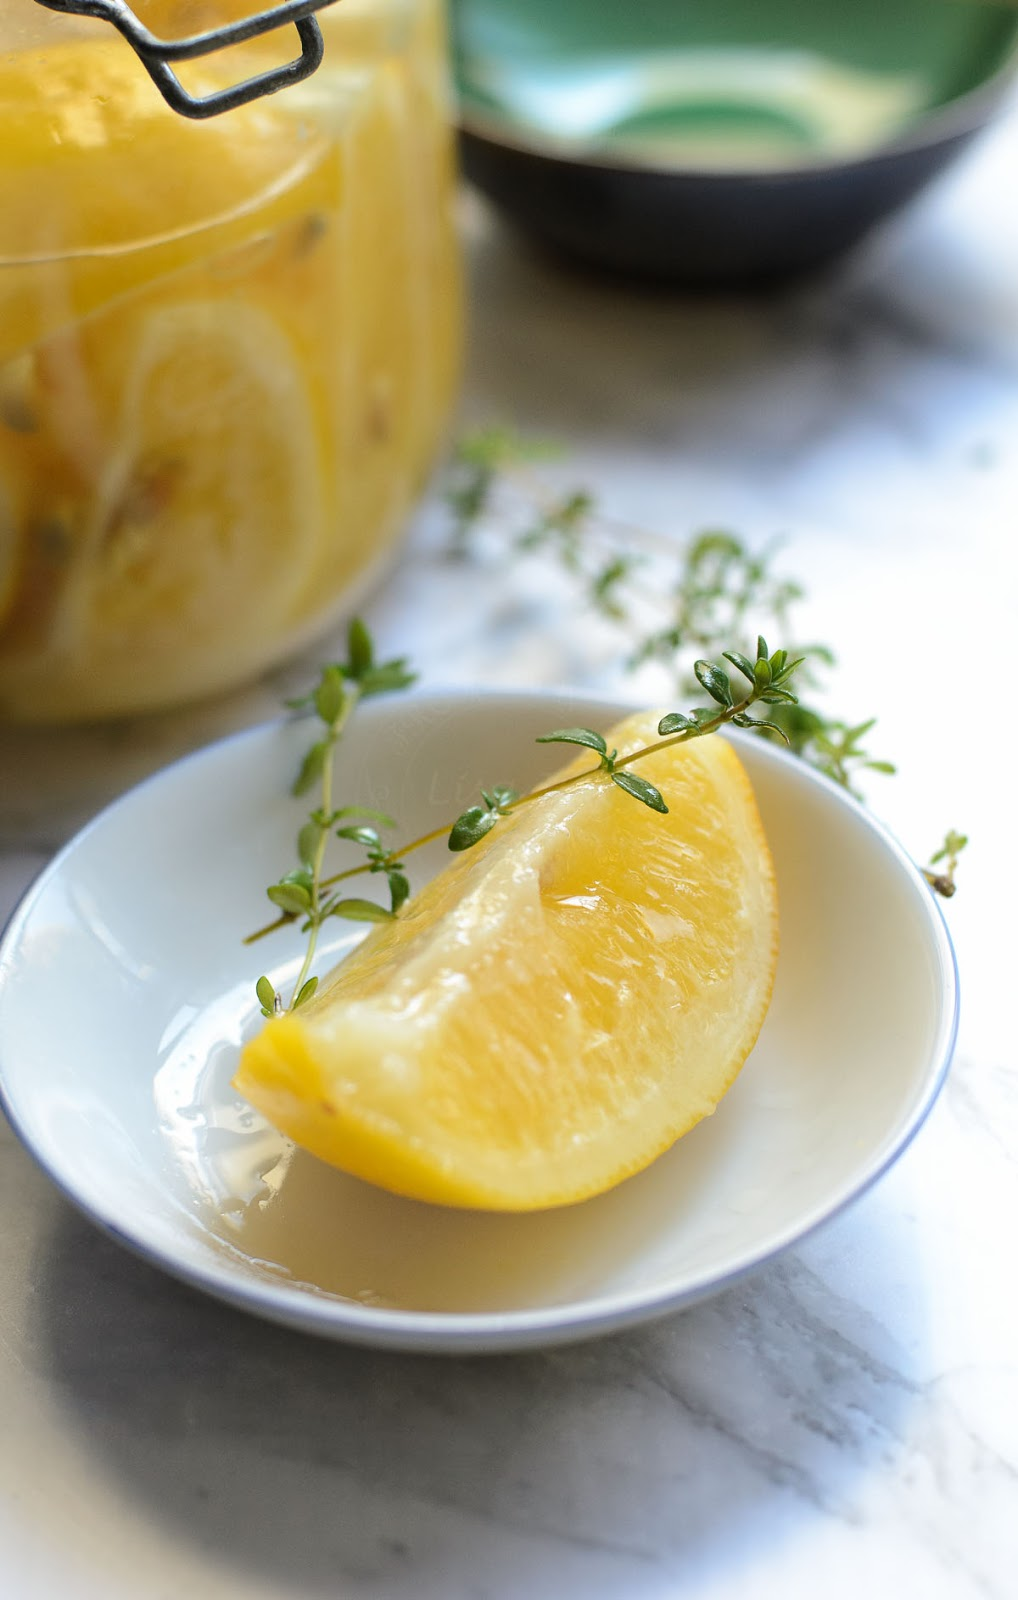 Preserved lemon slice photo